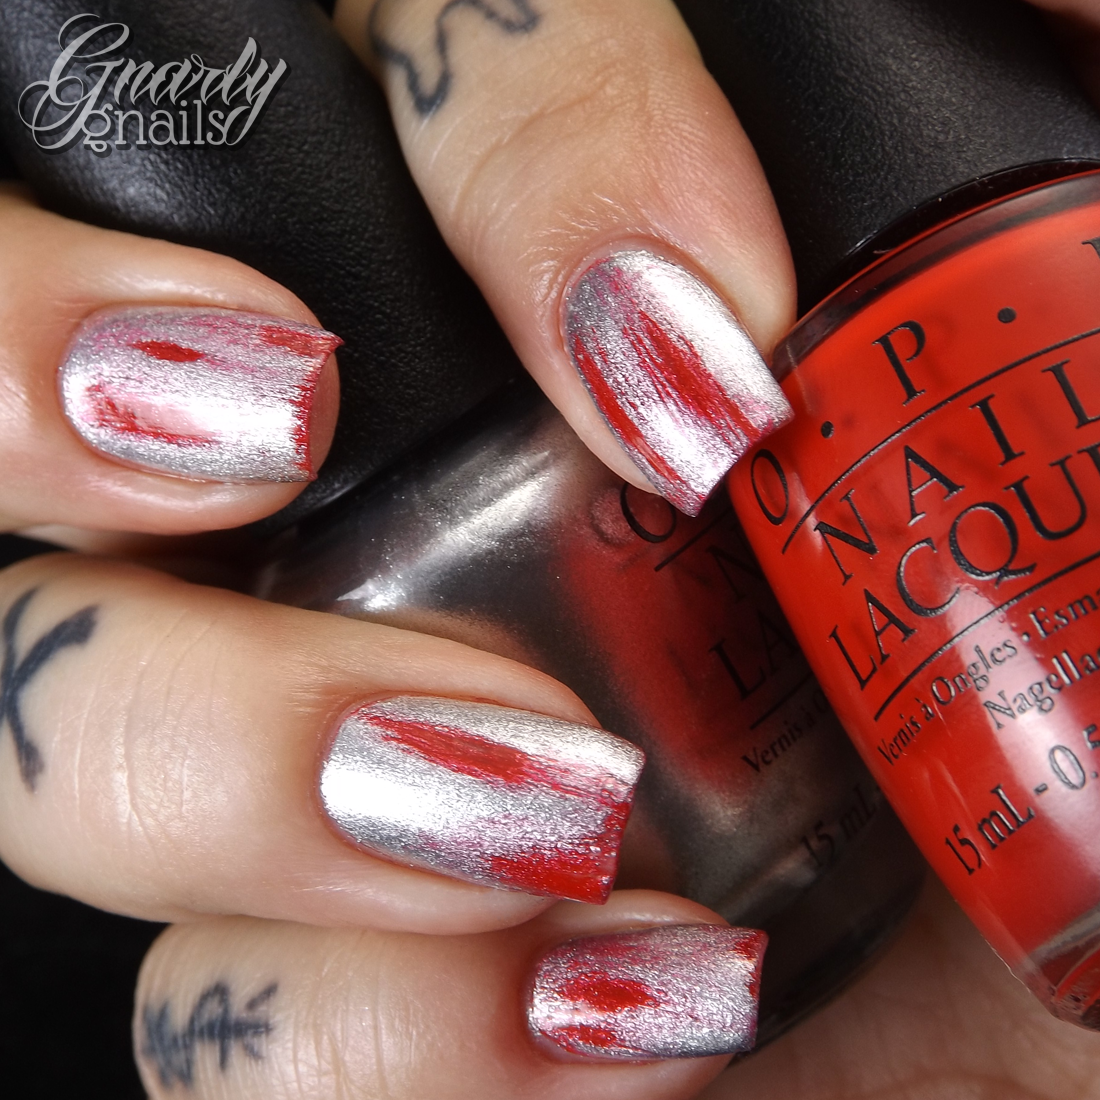 Opicoke super simple nail art gnarly gnails the other day i showed you the latest opi collection which is their collaboration with coca cola today i have for you a very simple nail art look i created prinsesfo Gallery